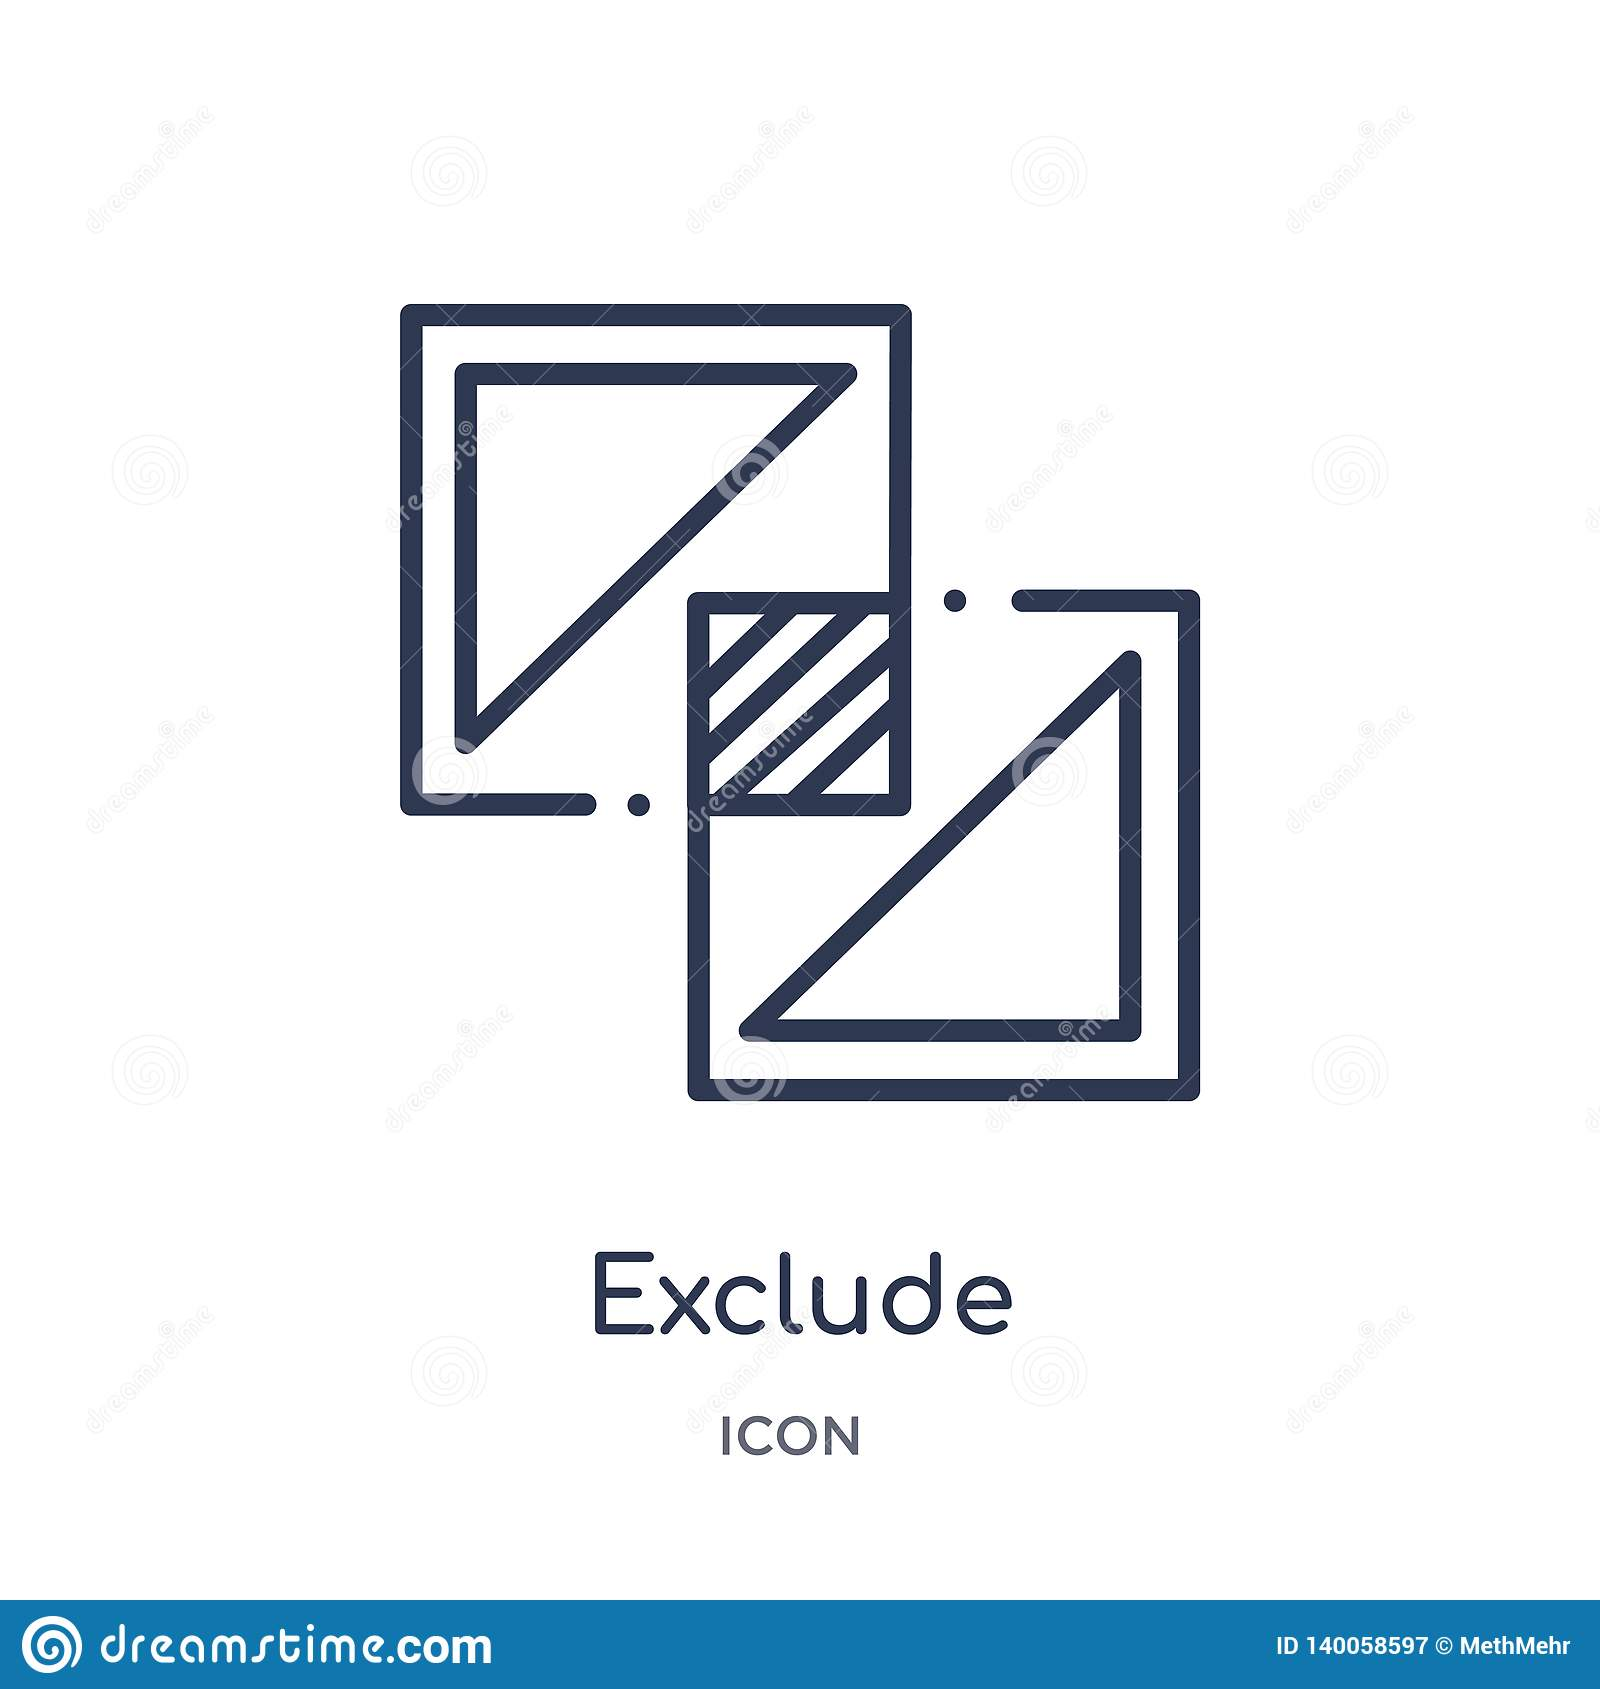 Linear exclude icon from Geometric figure outline collection. Thin line exclude icon isolated on white background. exclude trendy